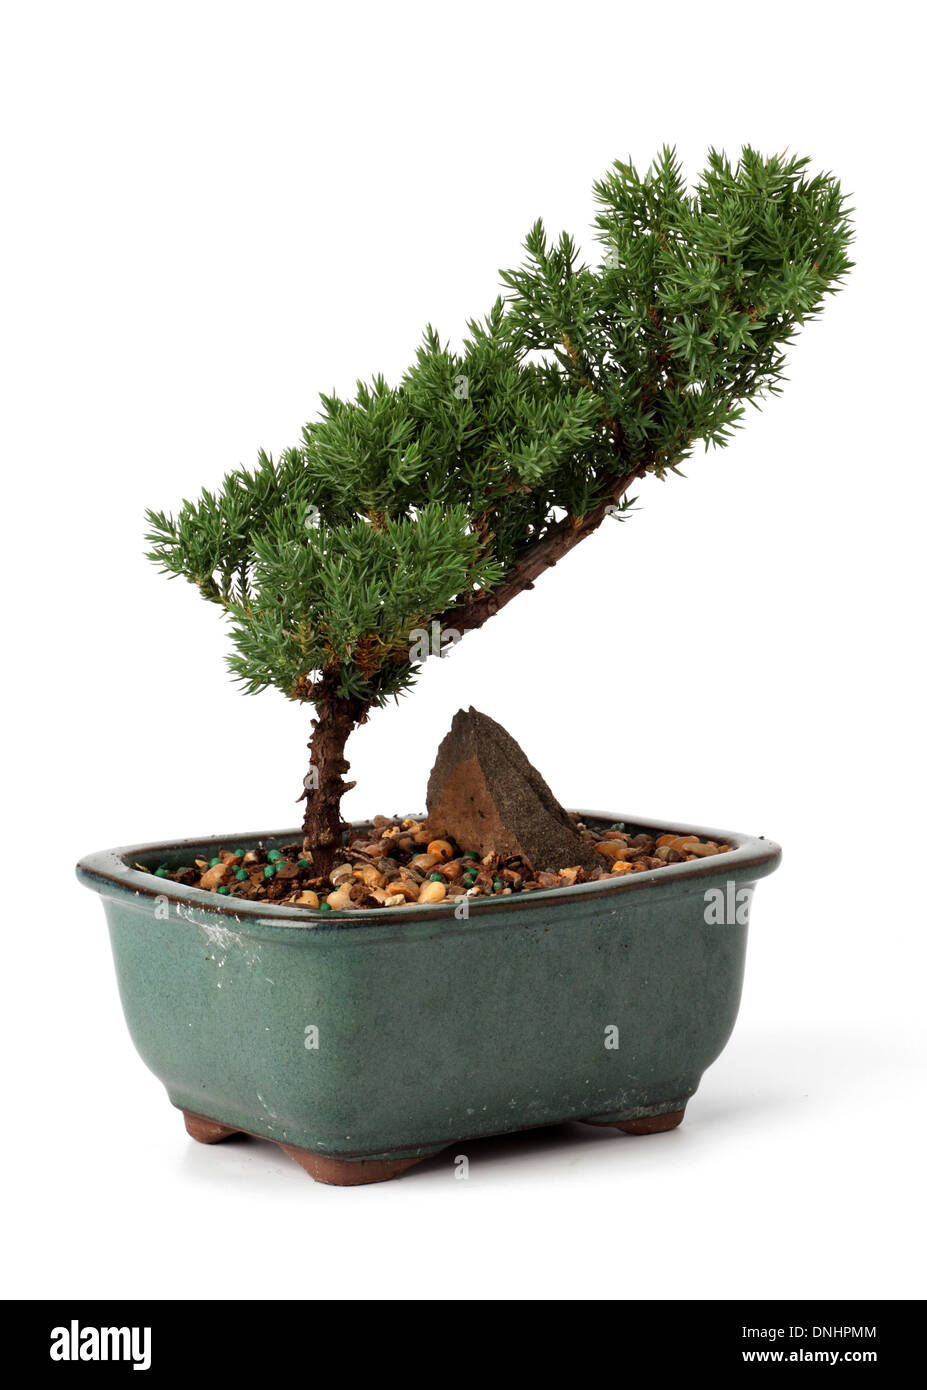 A small bonsai plant in a container on a white background - Stock Image